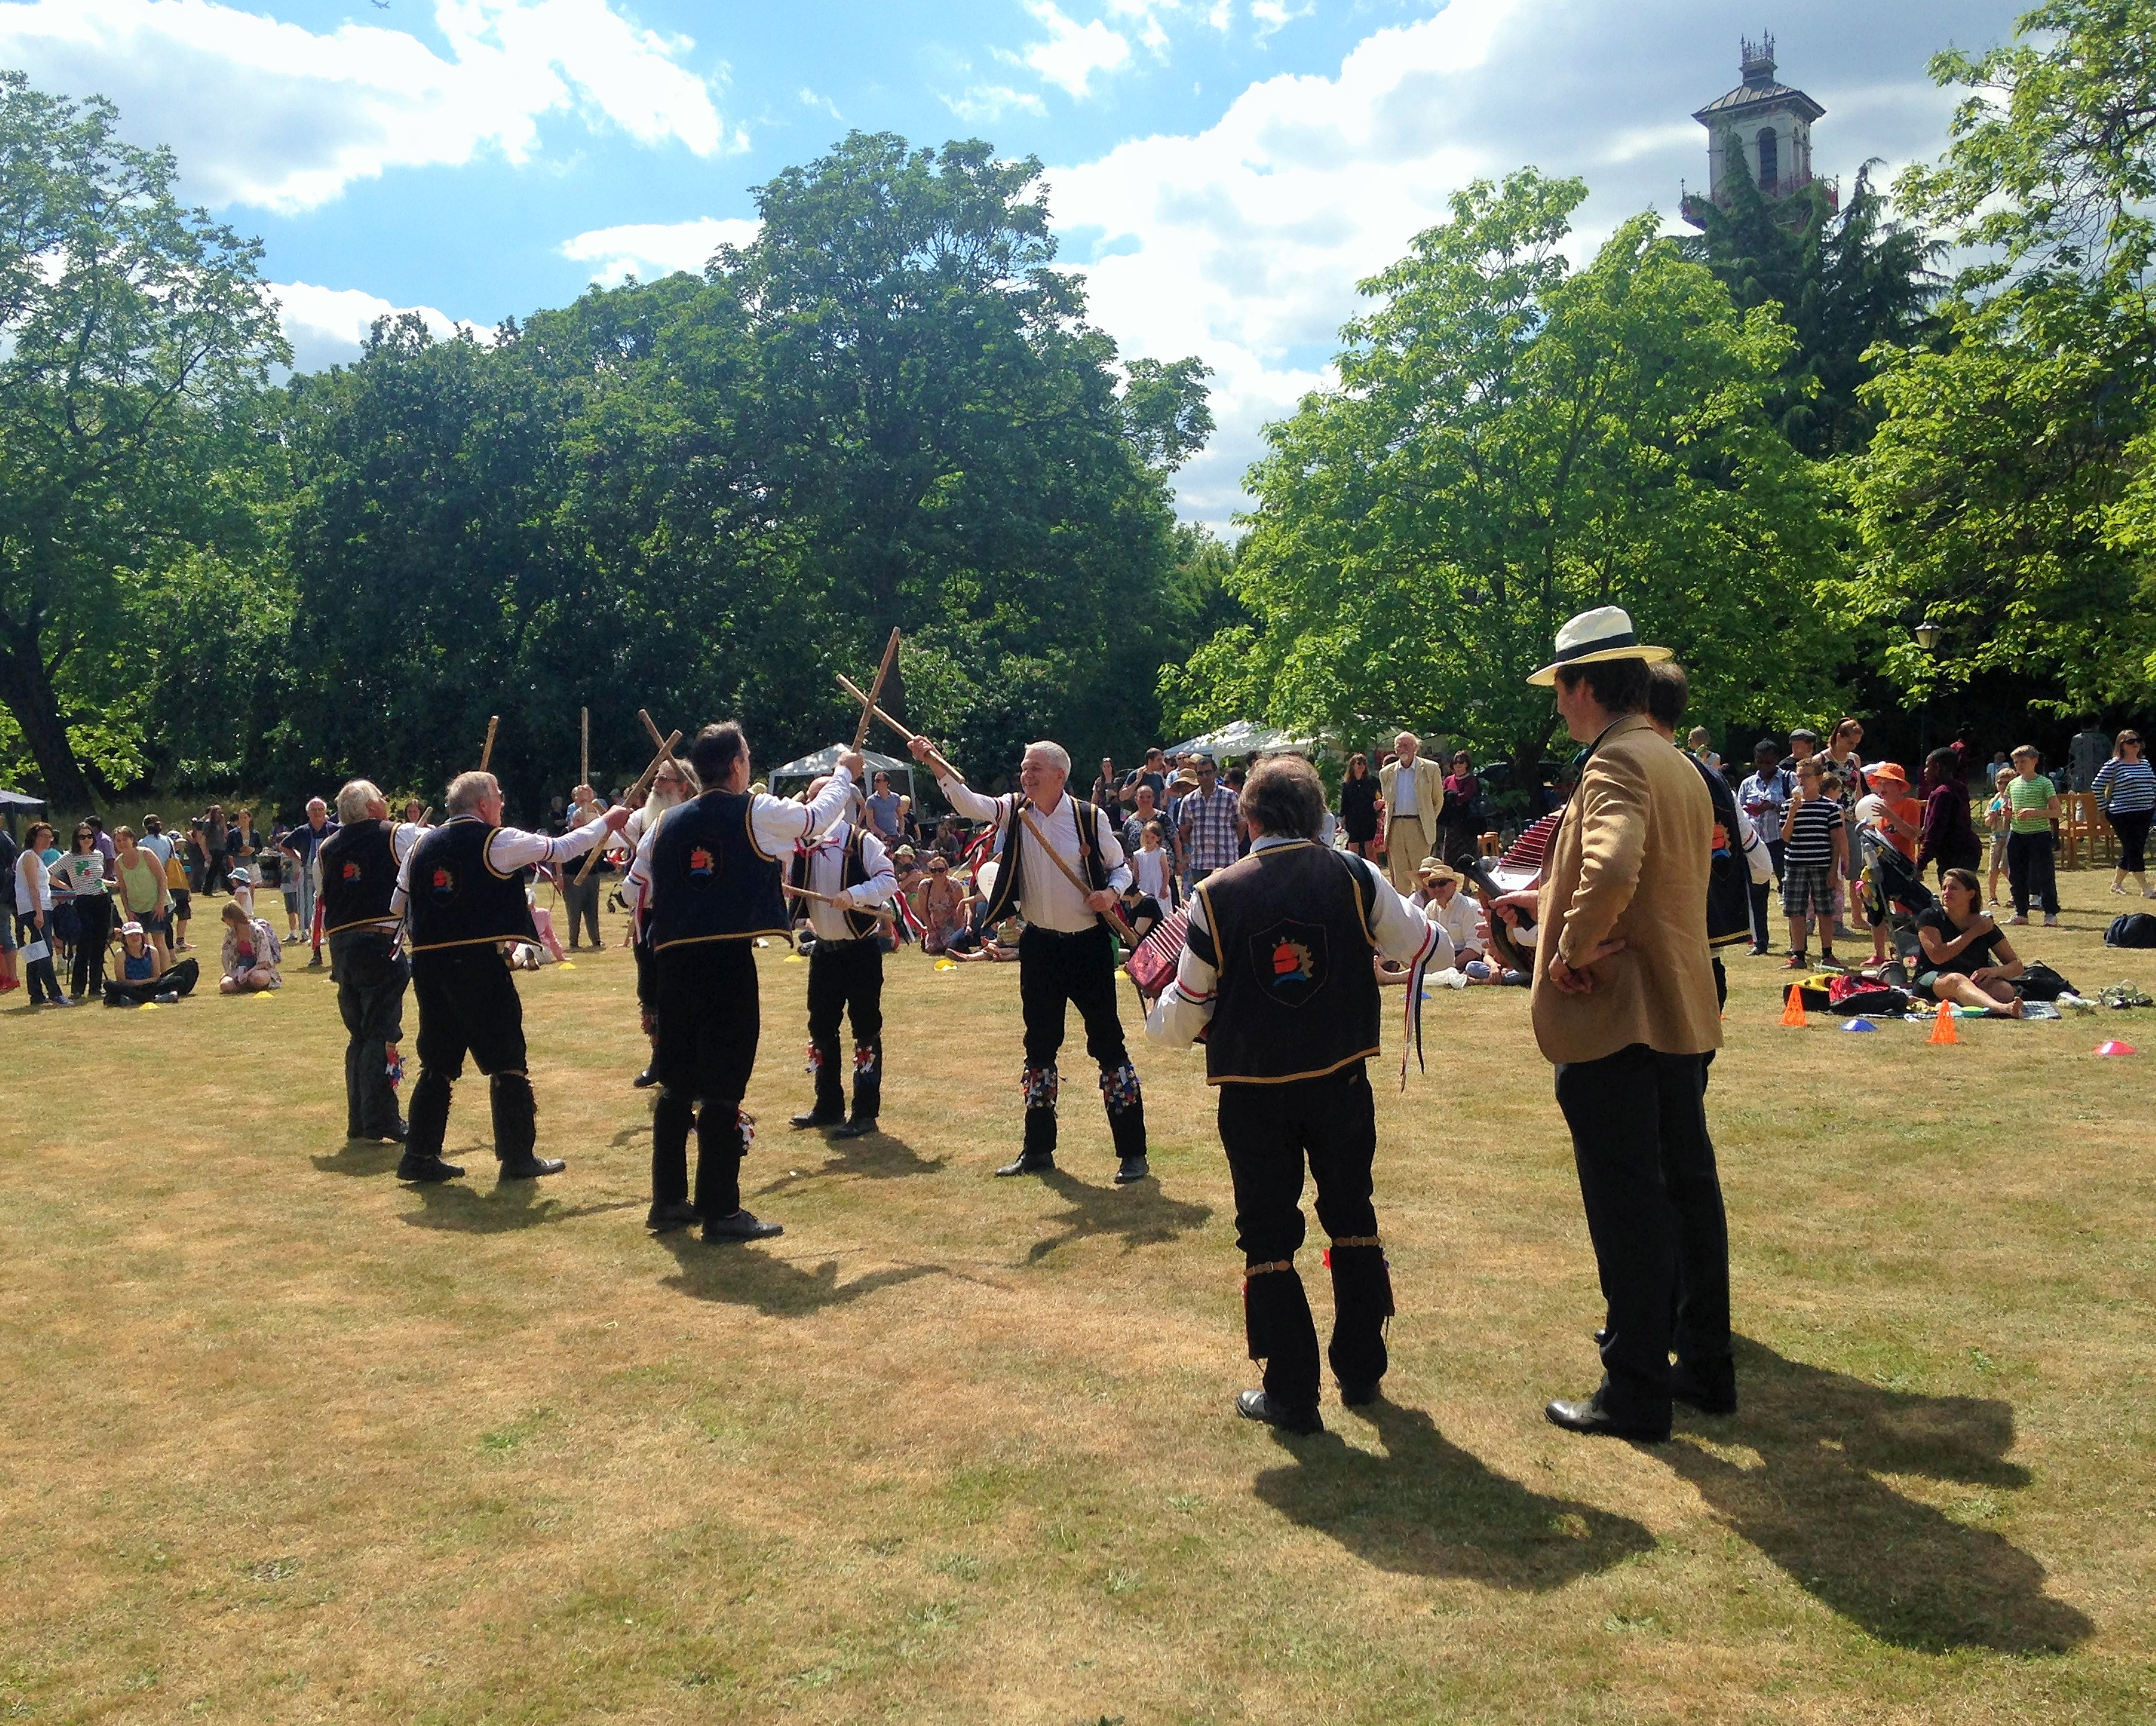 Morris dancers at North Lambeth Parish Fete - kenningtonrunoff.com